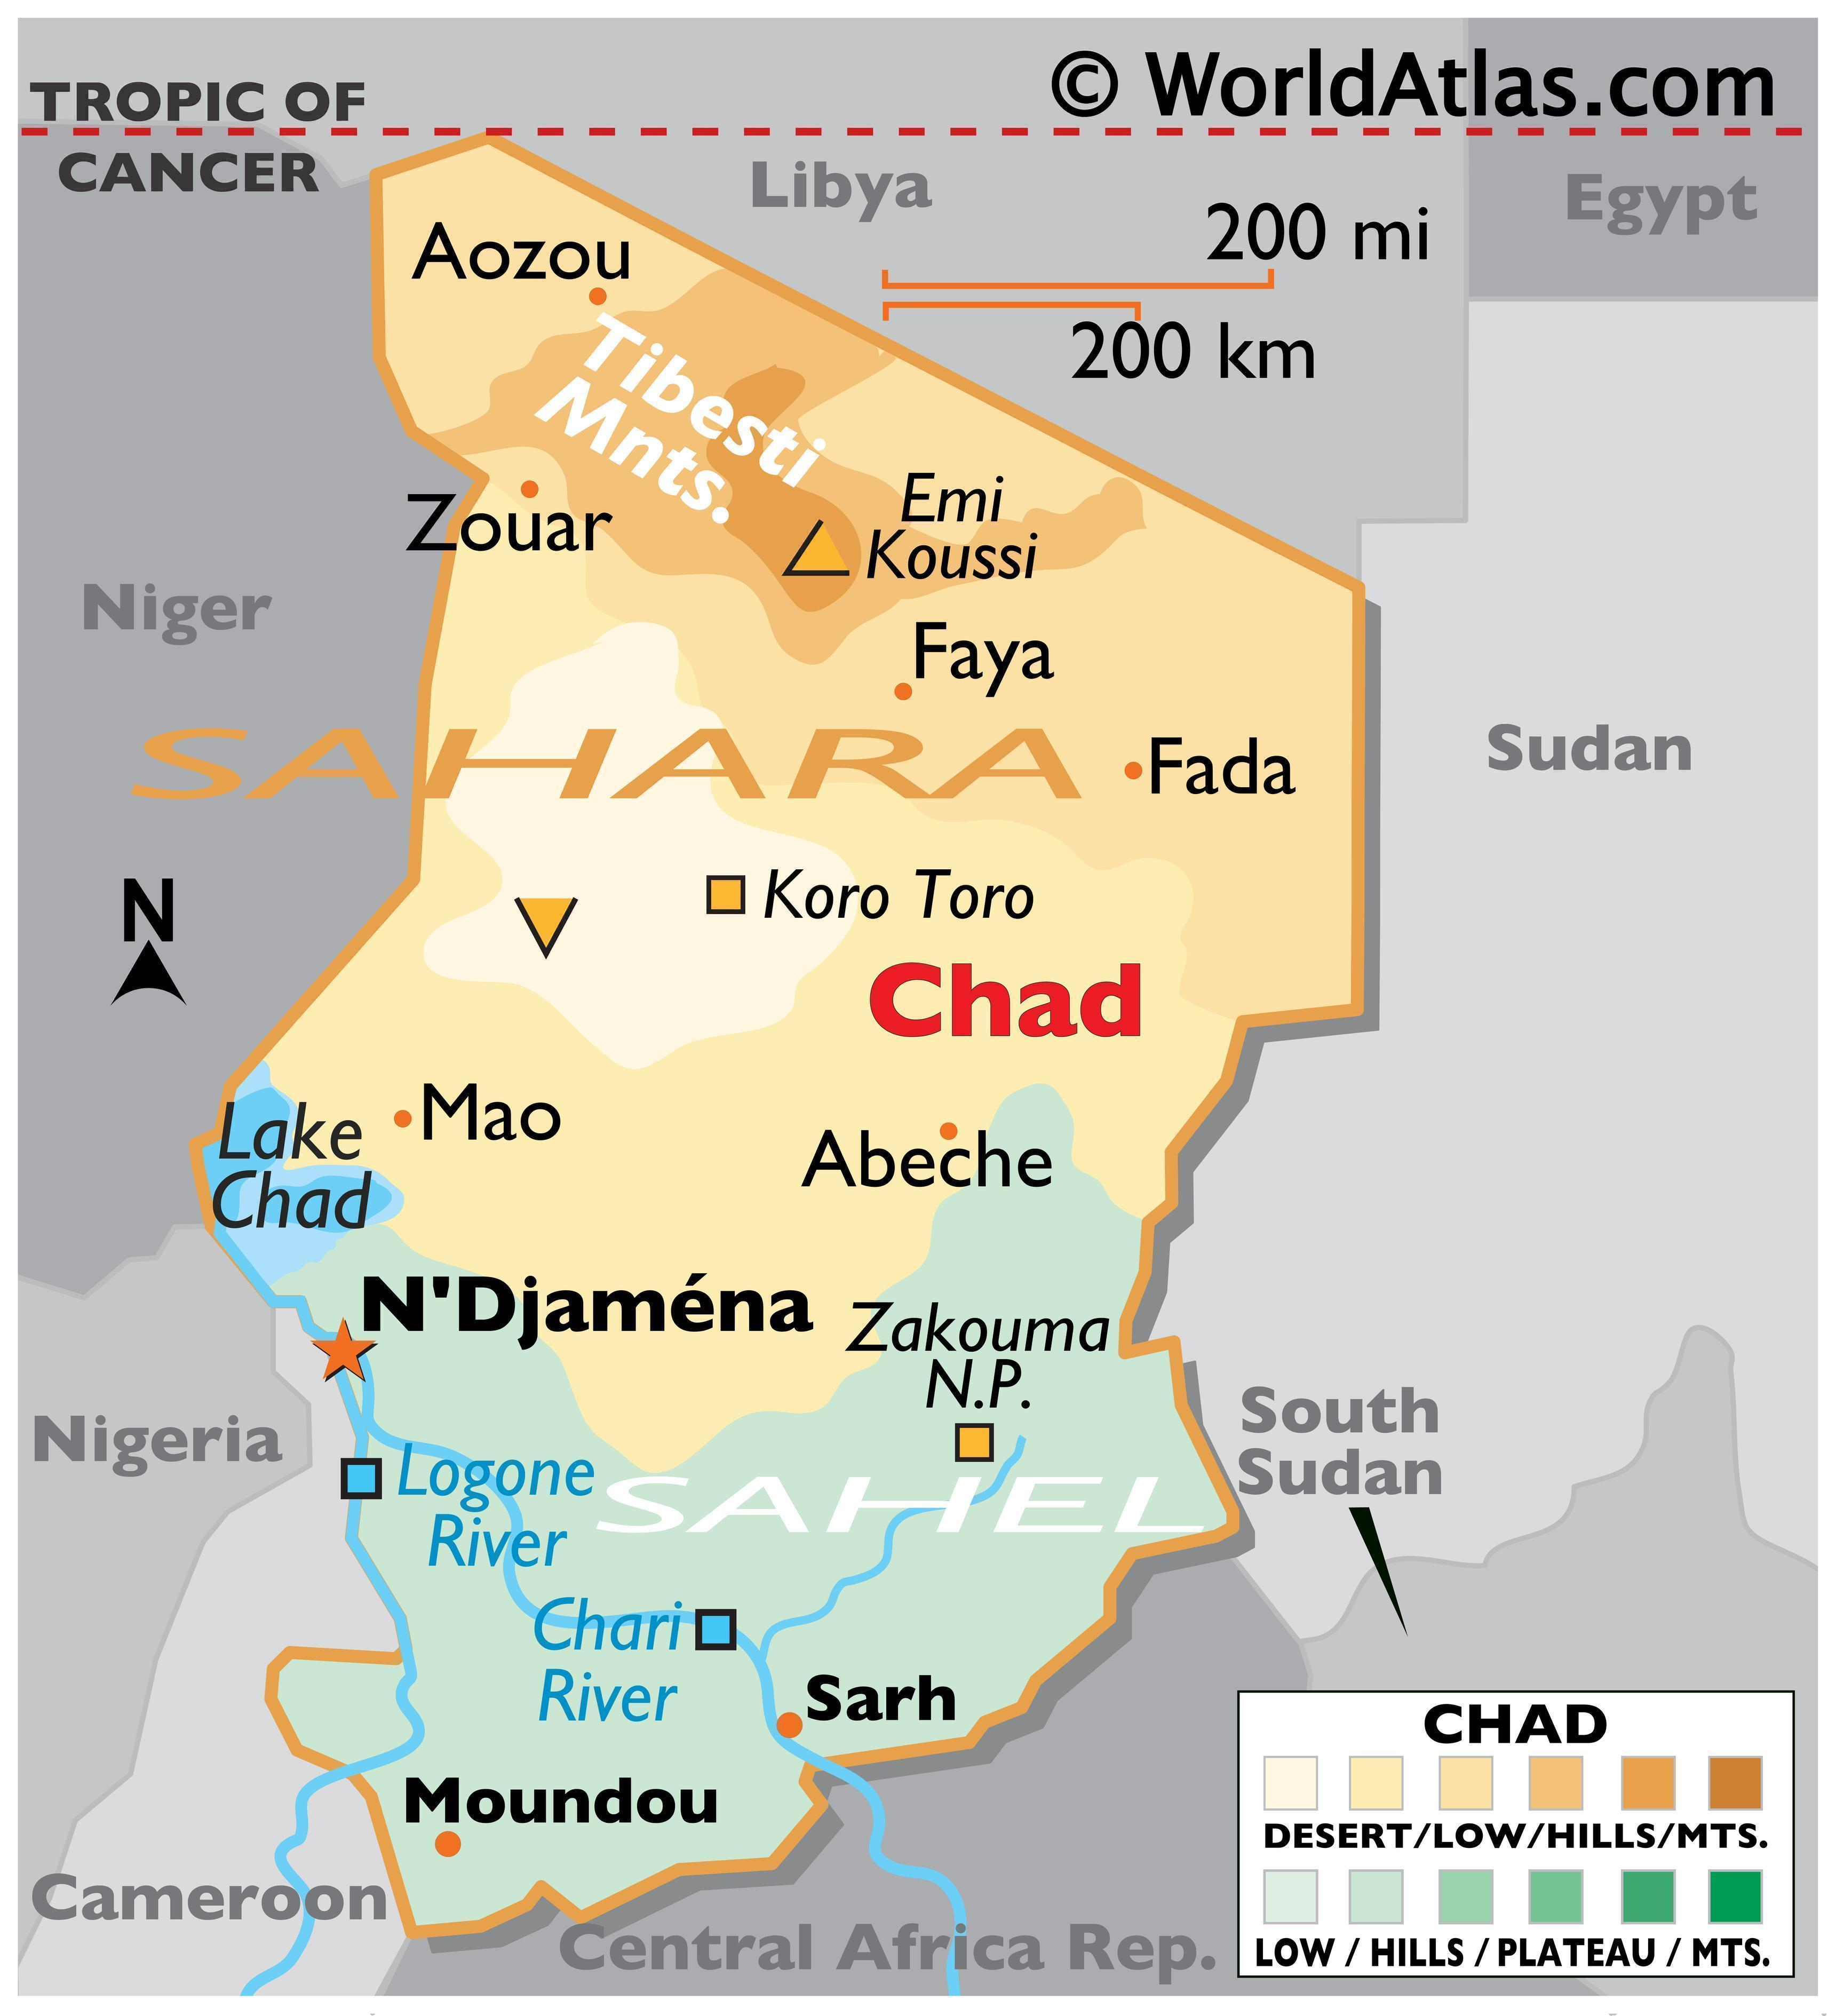 Physical Map of Chad with state boundaries, relief, major rivers, Lake Chad, mountain ranges, and important cities.